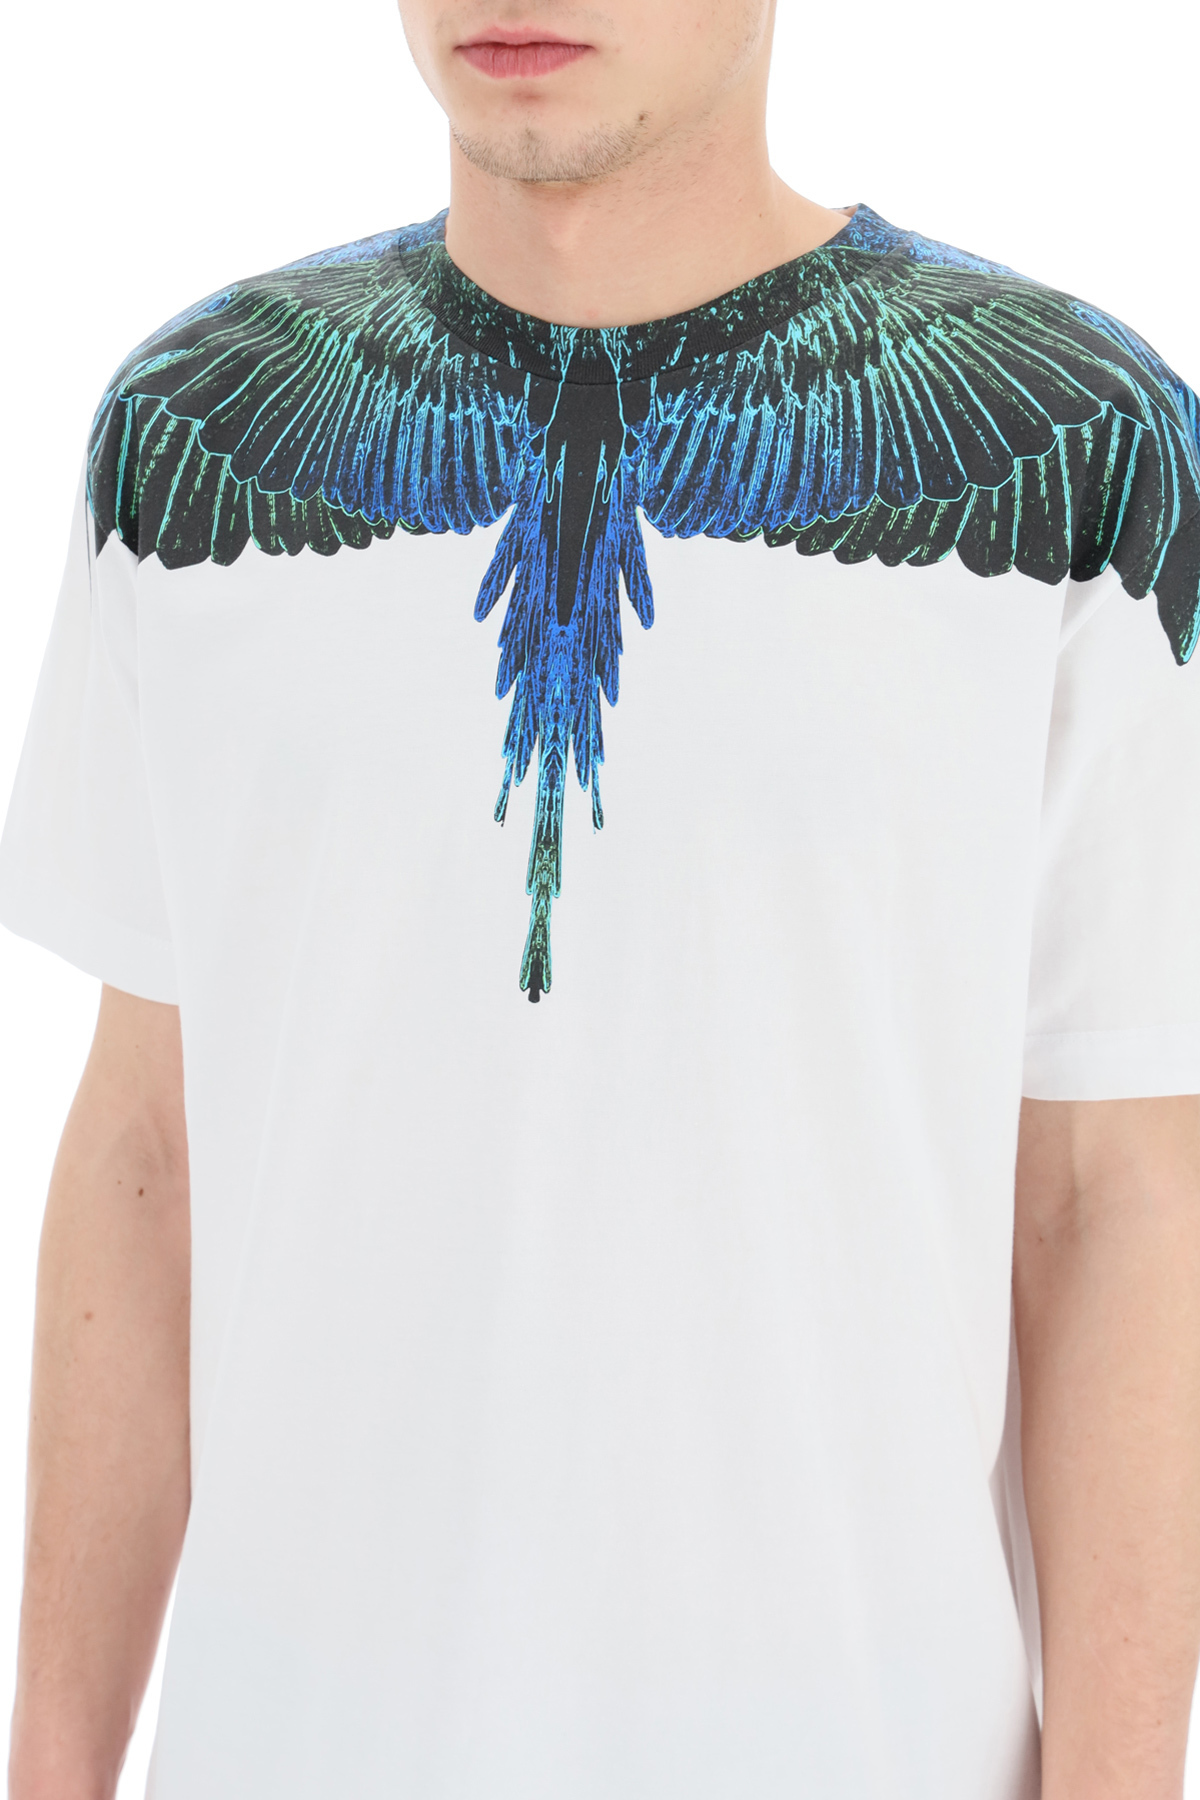 MARCELO BURLON COUNTY OF MILAN Cottons WINGS BLUE NEON PRINT T-SHIRT